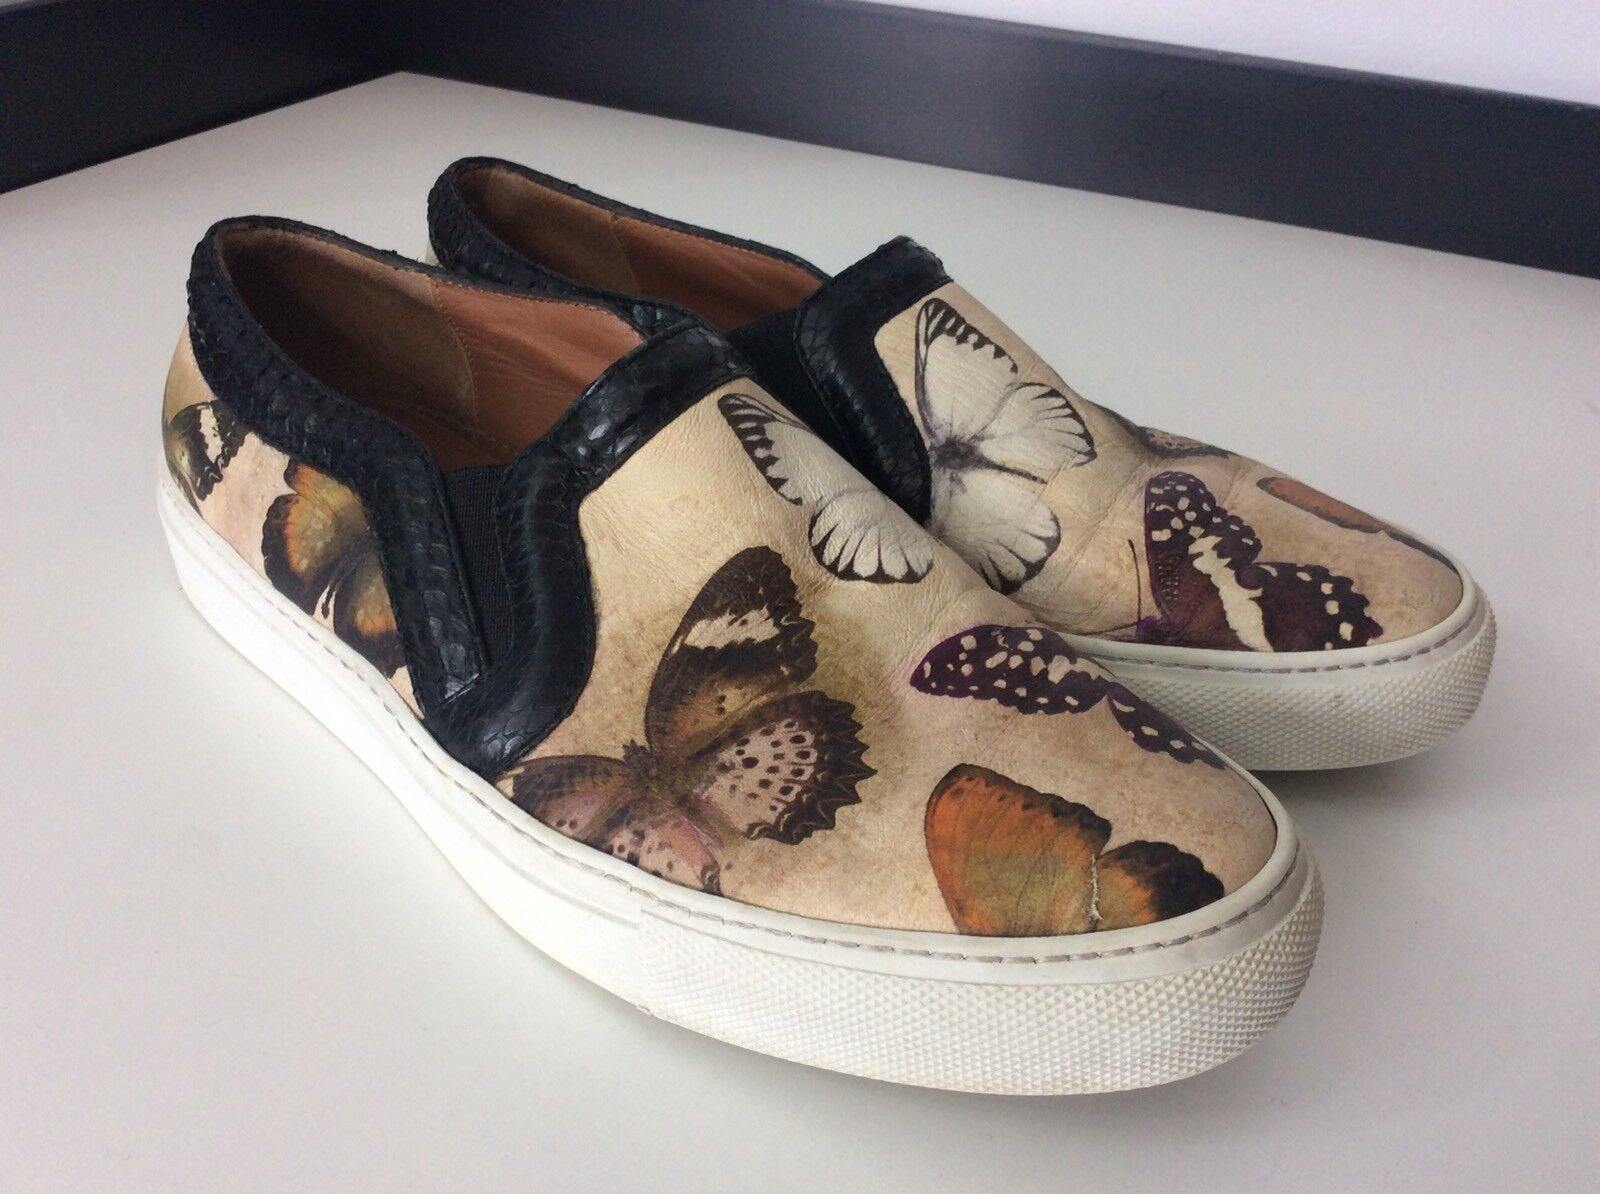 Givenchy Loafers Slip On Flats shoes Size 38 Moccasins Moth Butterfly